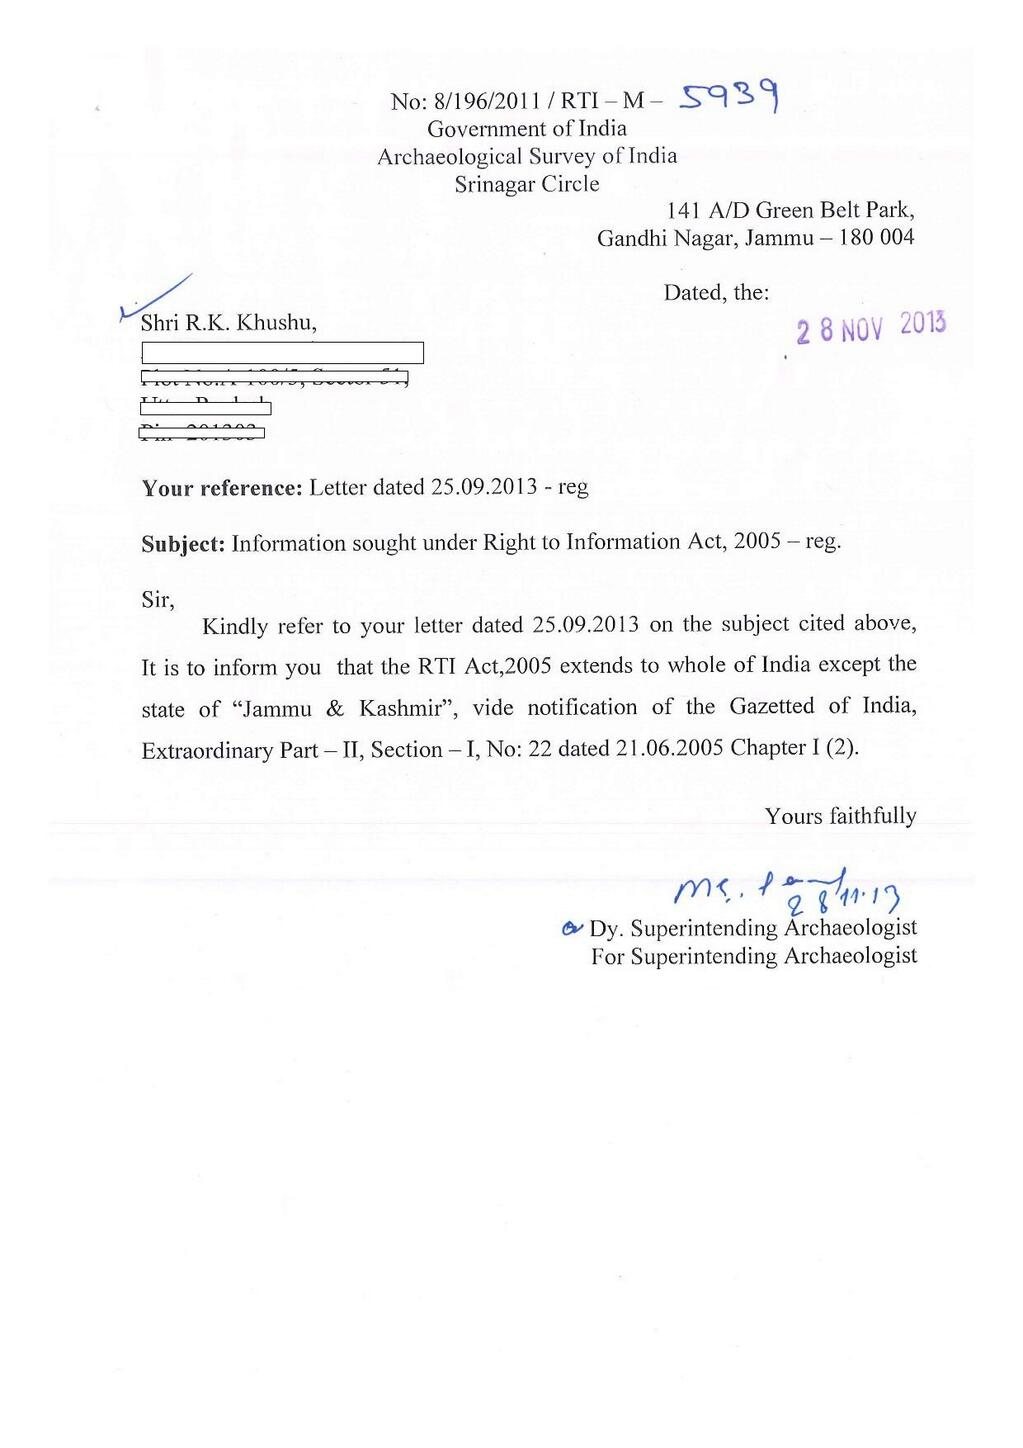 Govt reply to RTI application about Shankaracharya Hill